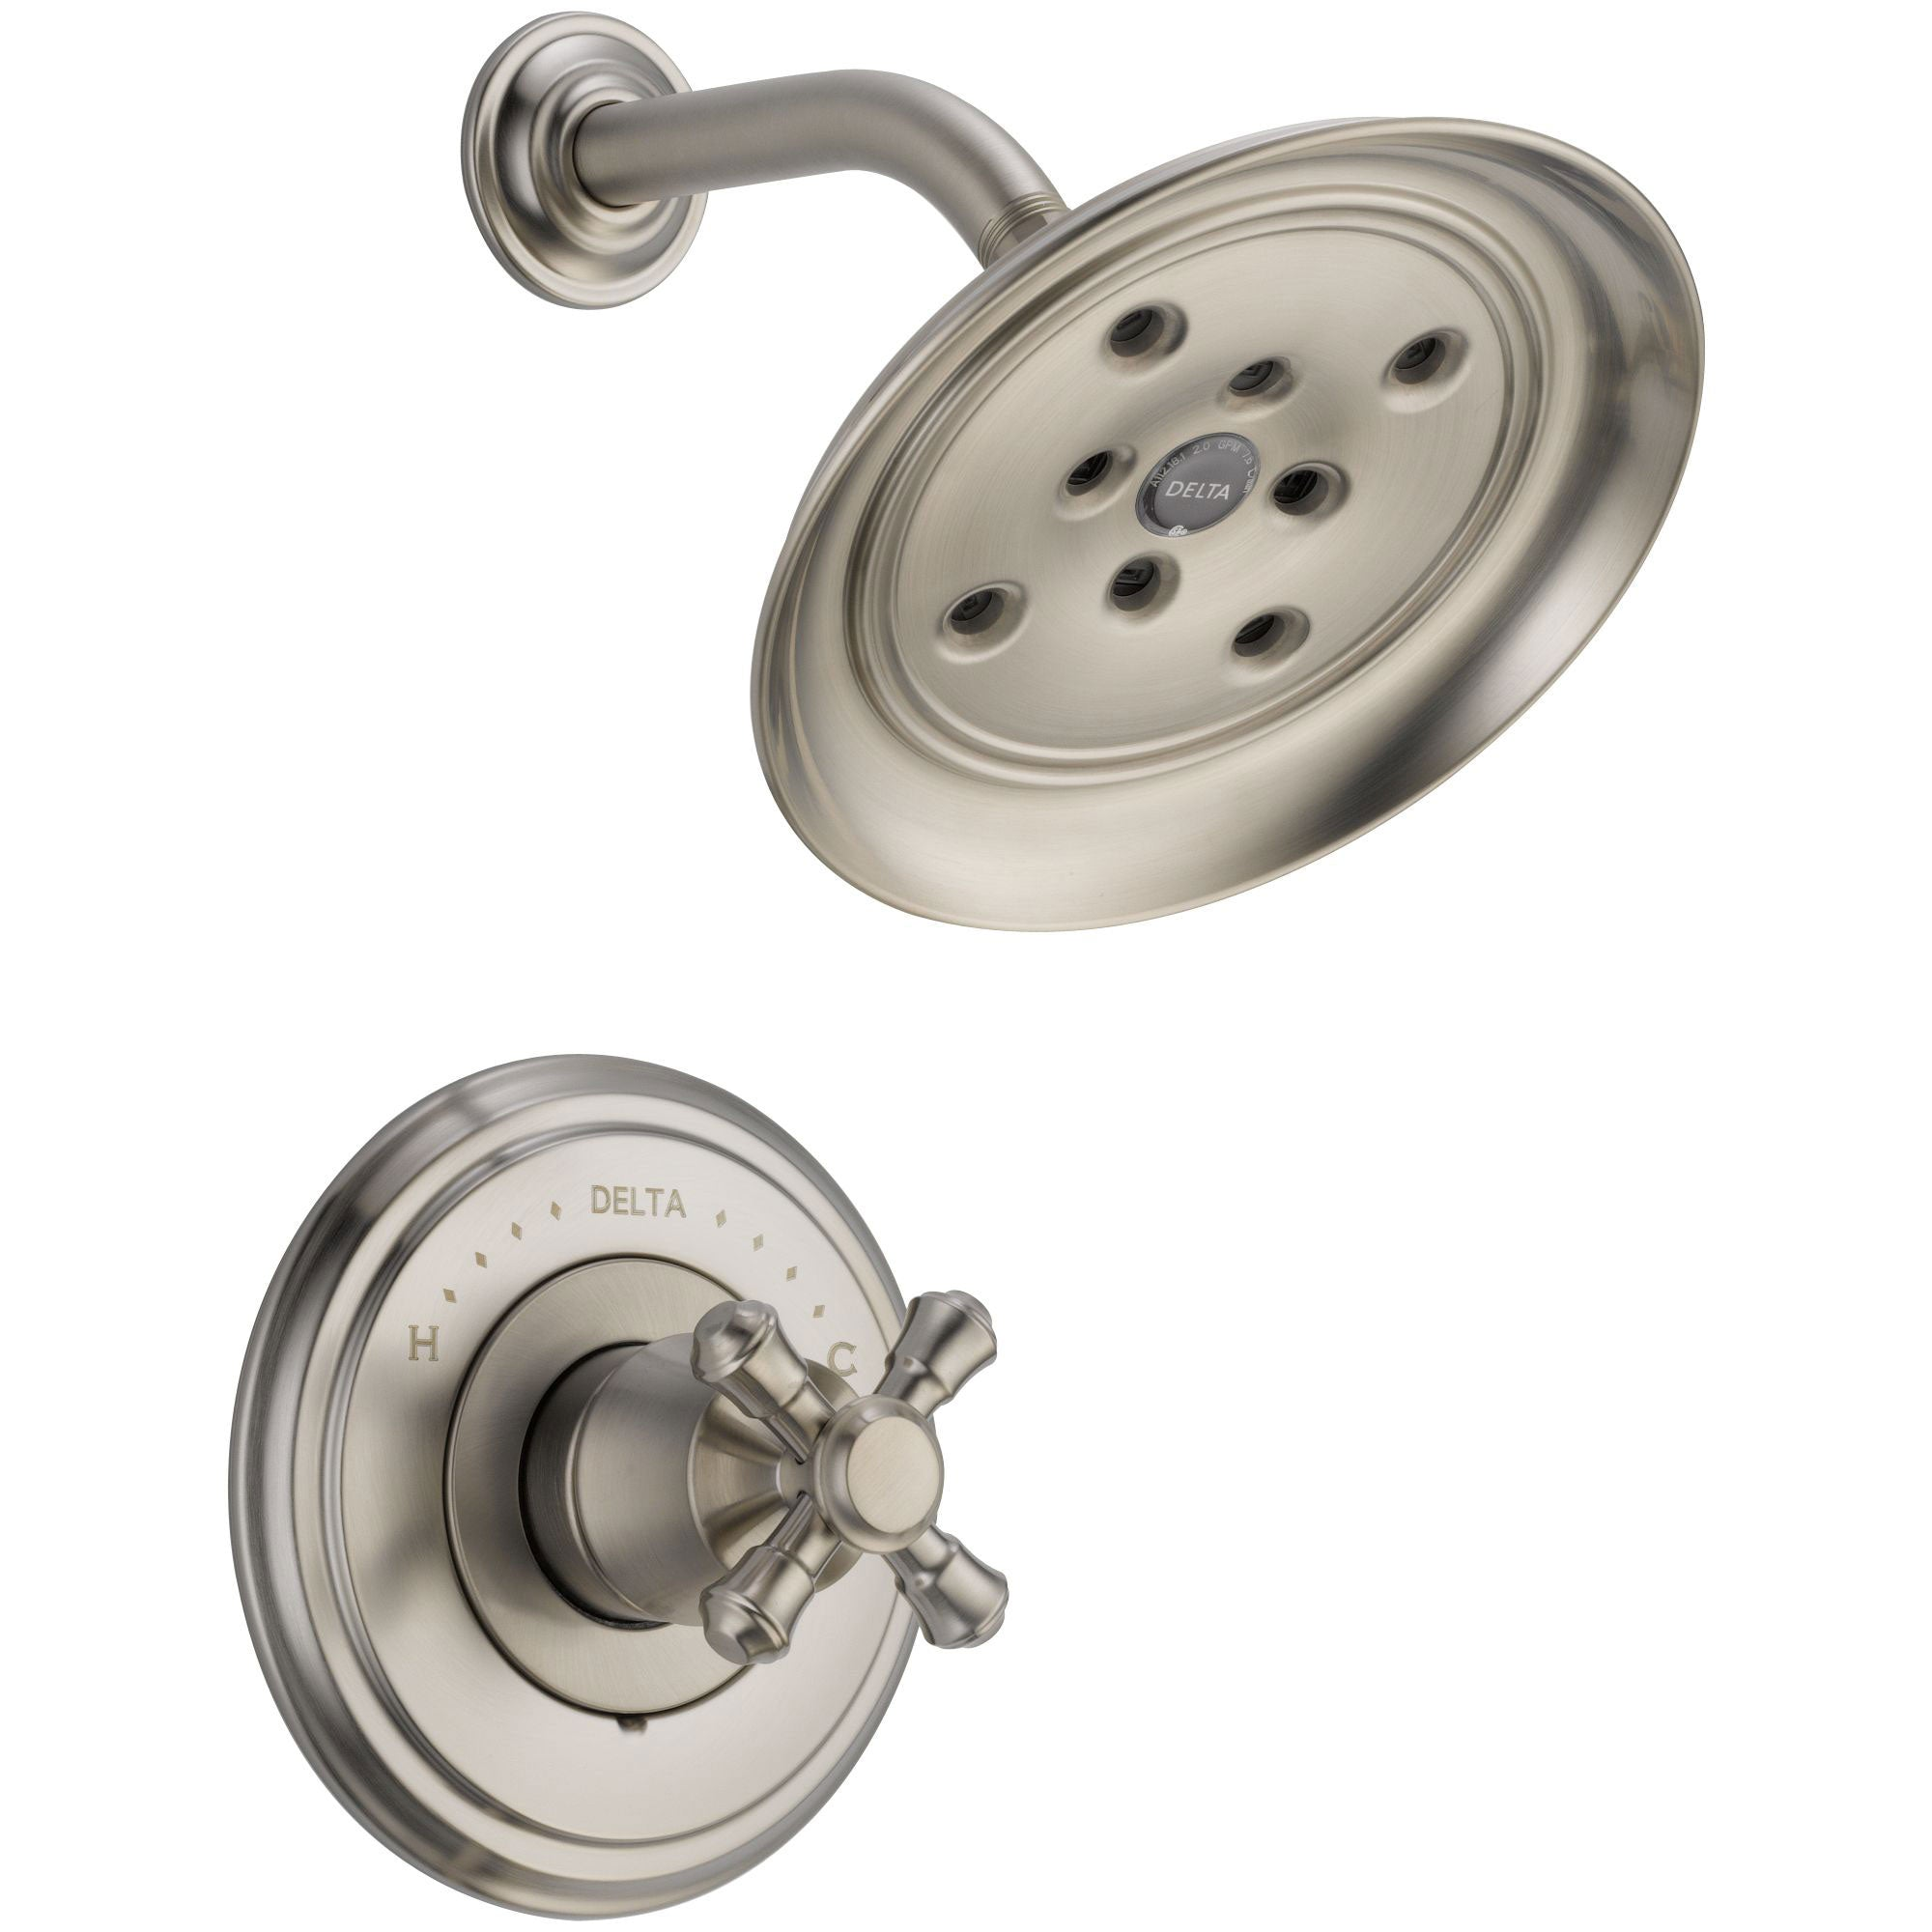 Delta Cassidy Stainless Steel Finish 14 Series Shower Only Faucet INCLUDES Rough-in Valve and Single Cross Handle D1220V